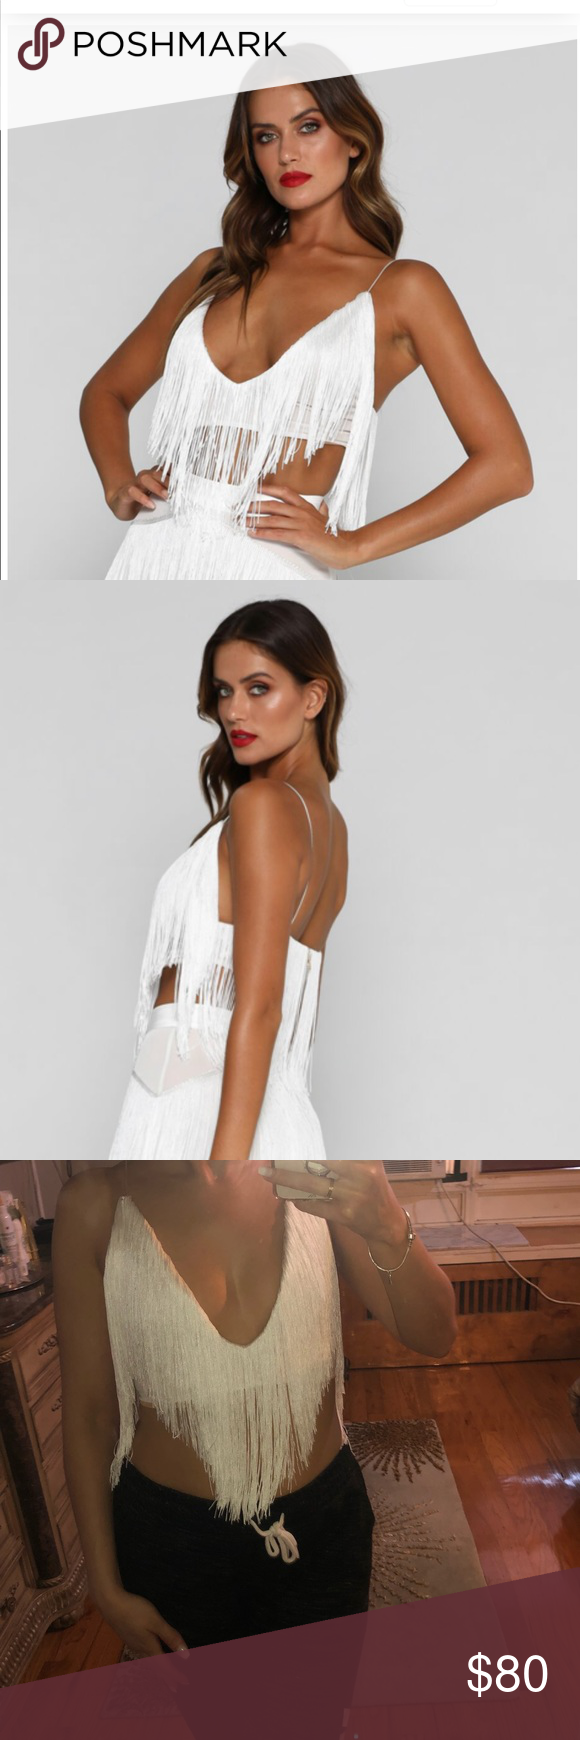 4626e74027501 Meshki Leia fringetop Sold out stunning Meshki leia fringe top in white ..  size small brand new never worn just tried on .. tagged ASOS for views  meshki ...